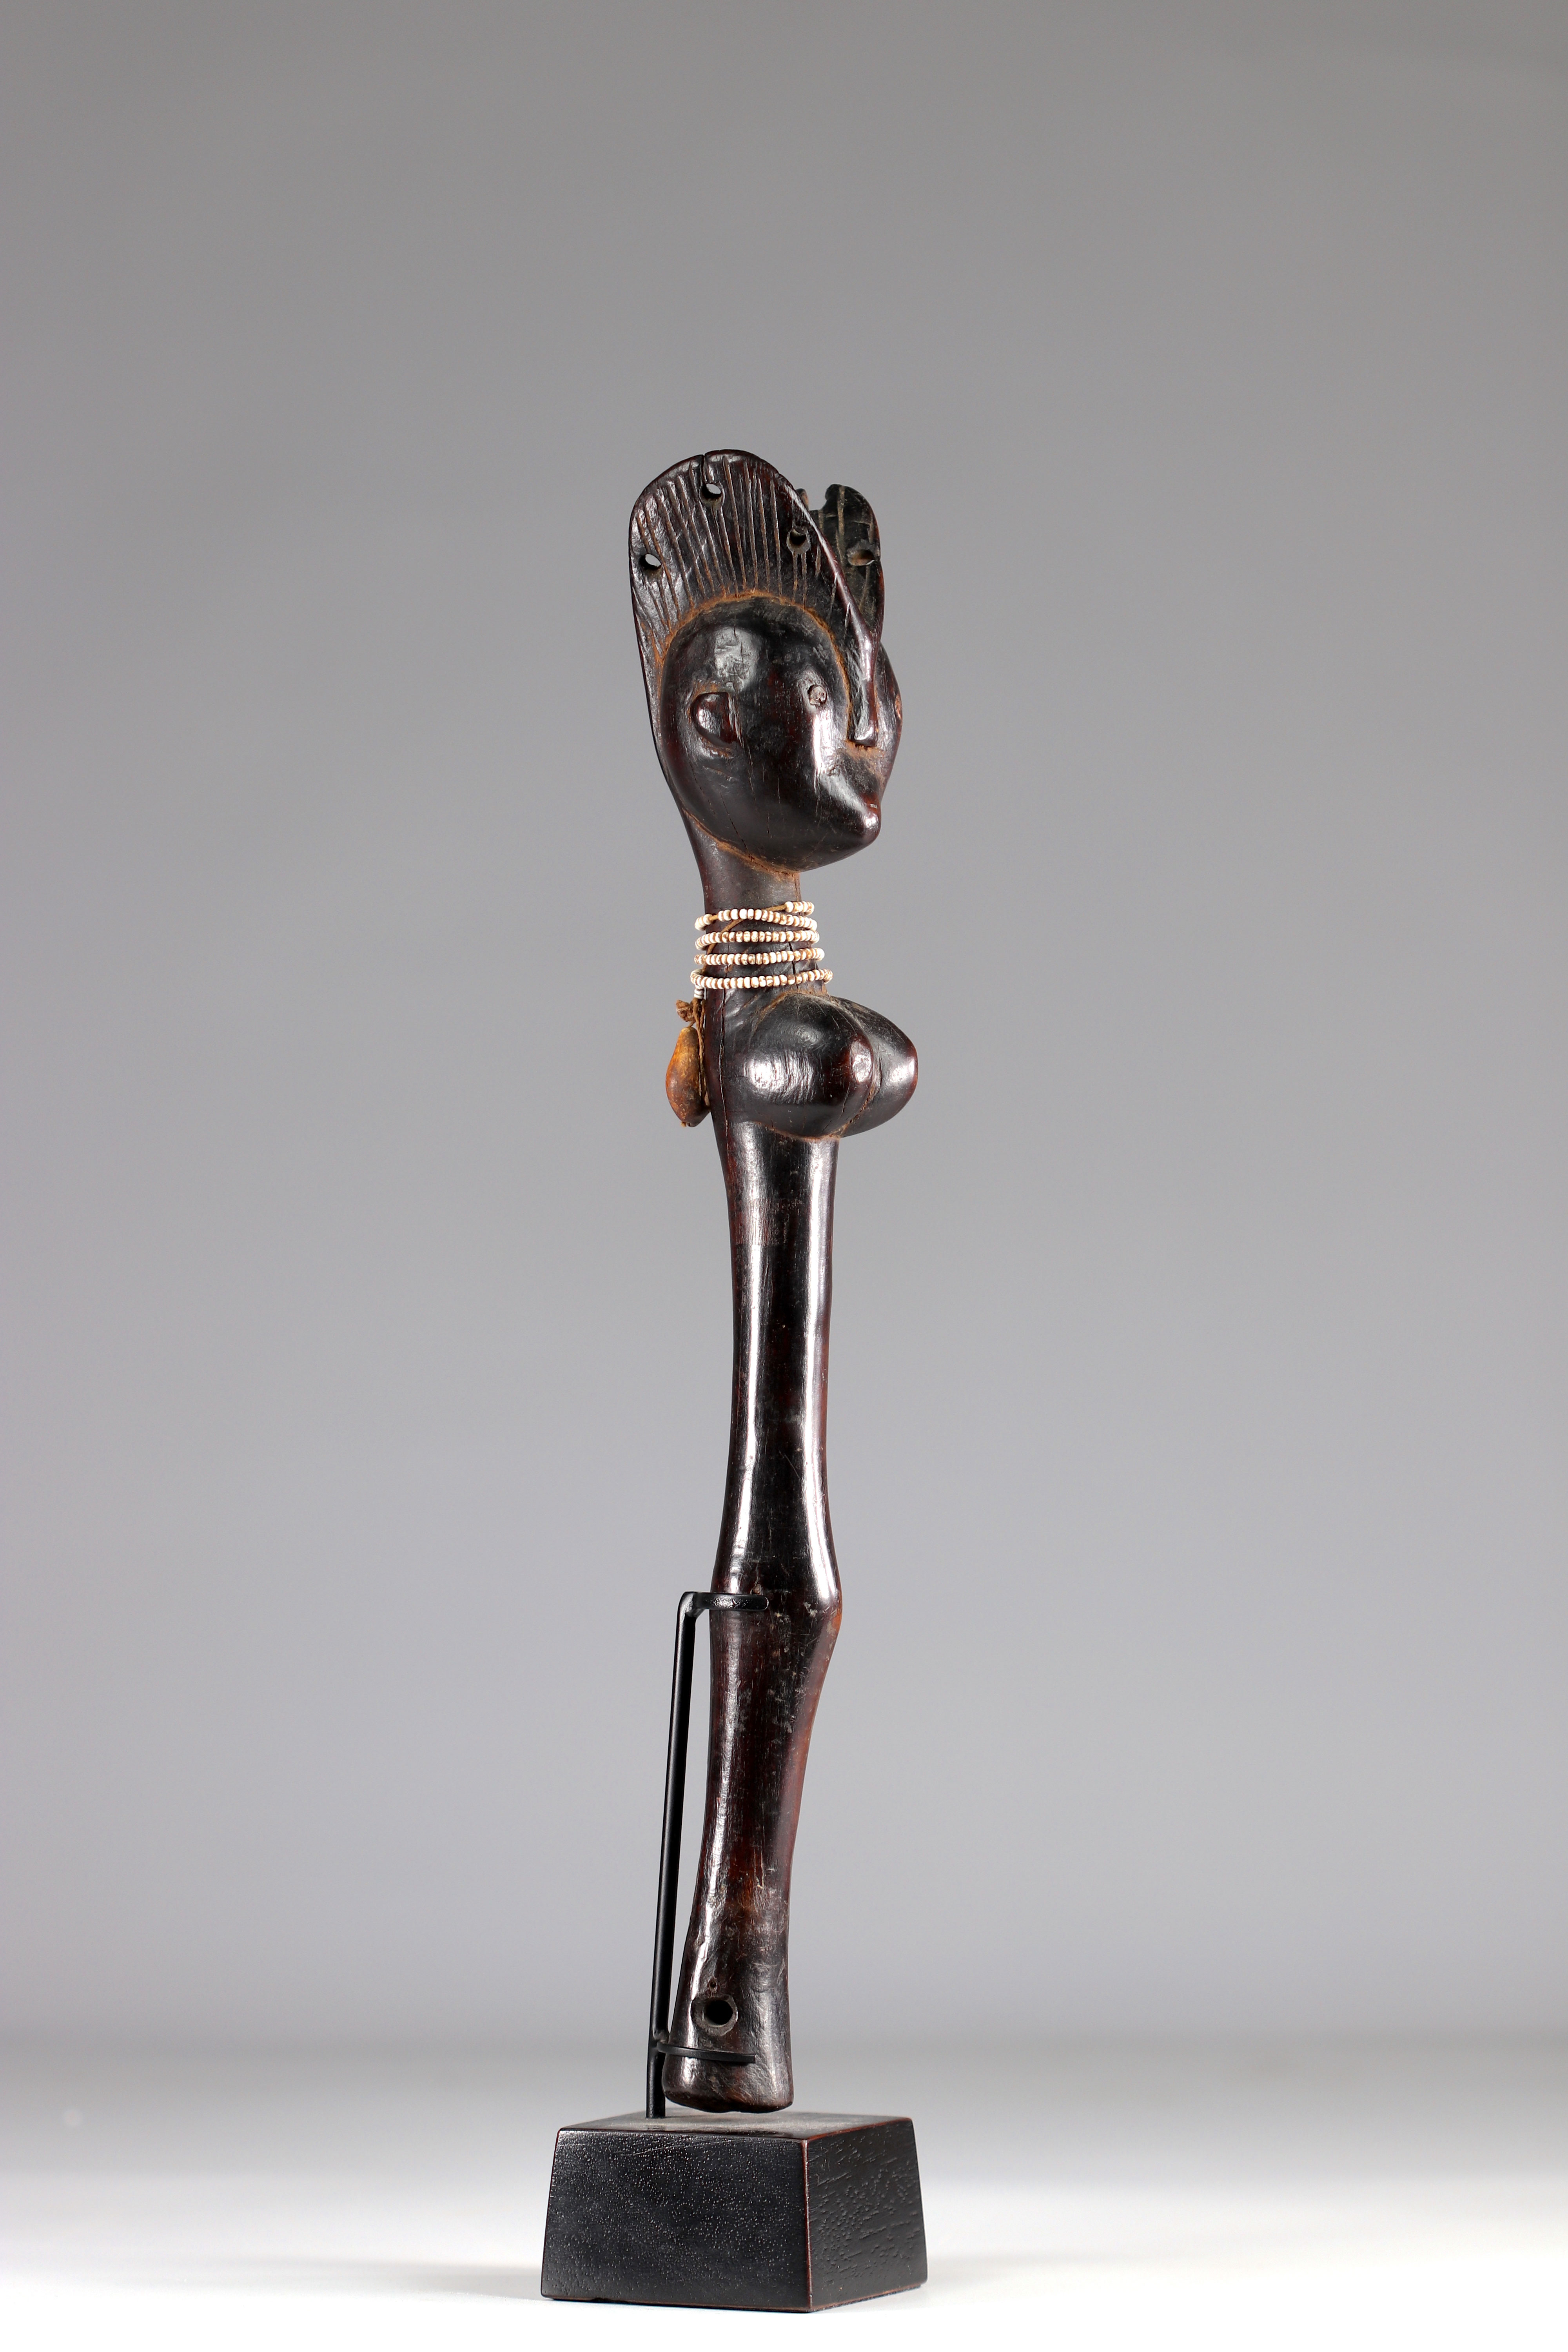 Mossi Scepter-Old Mossi ceremonial scepter (Burkina Faso). First half of the XXth Century. Superb pa